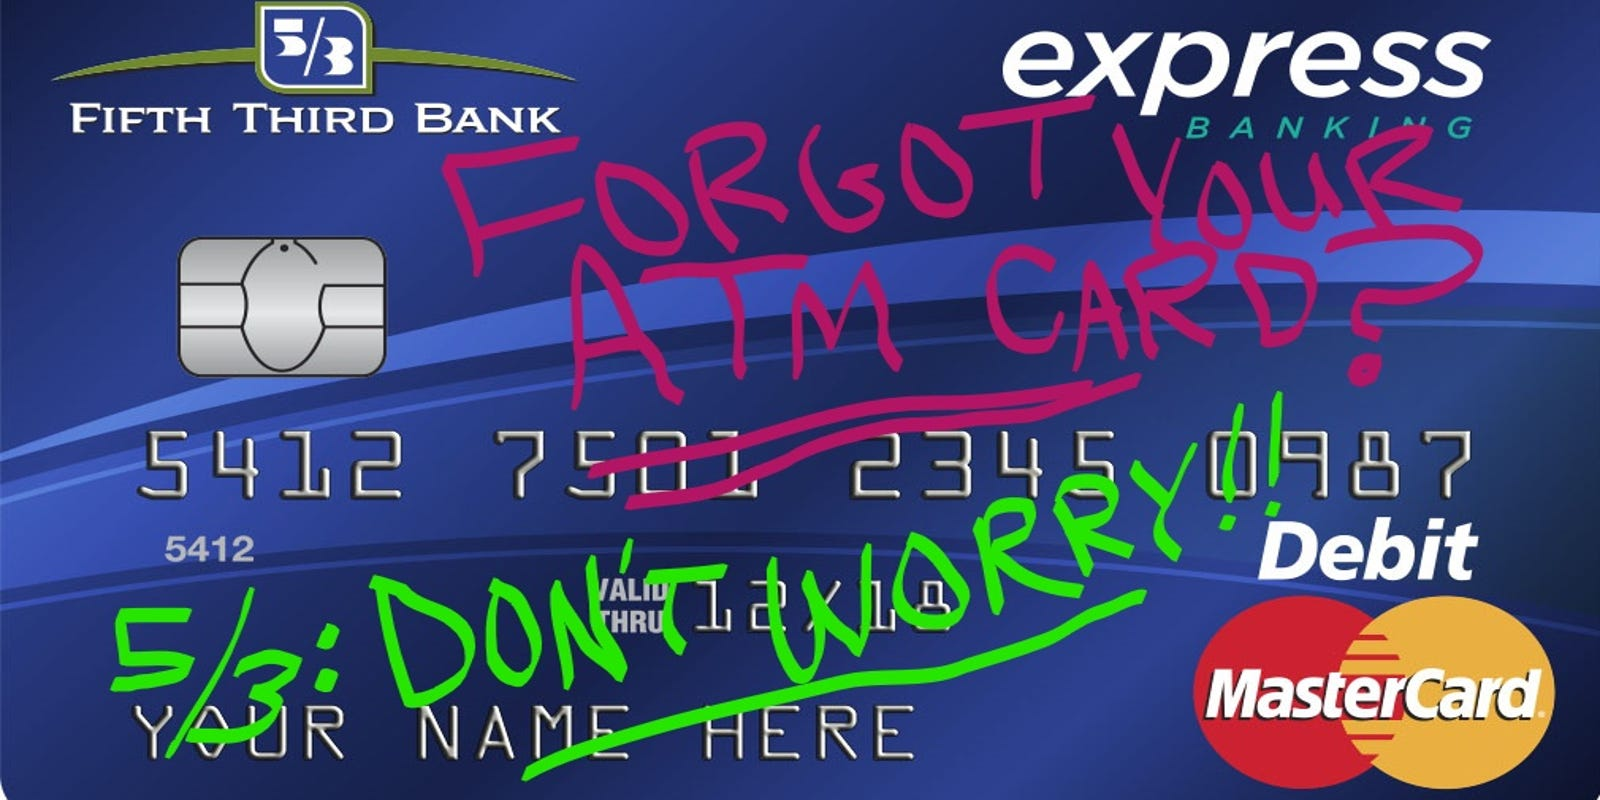 Fifth Third Bank ATM card no longer needed